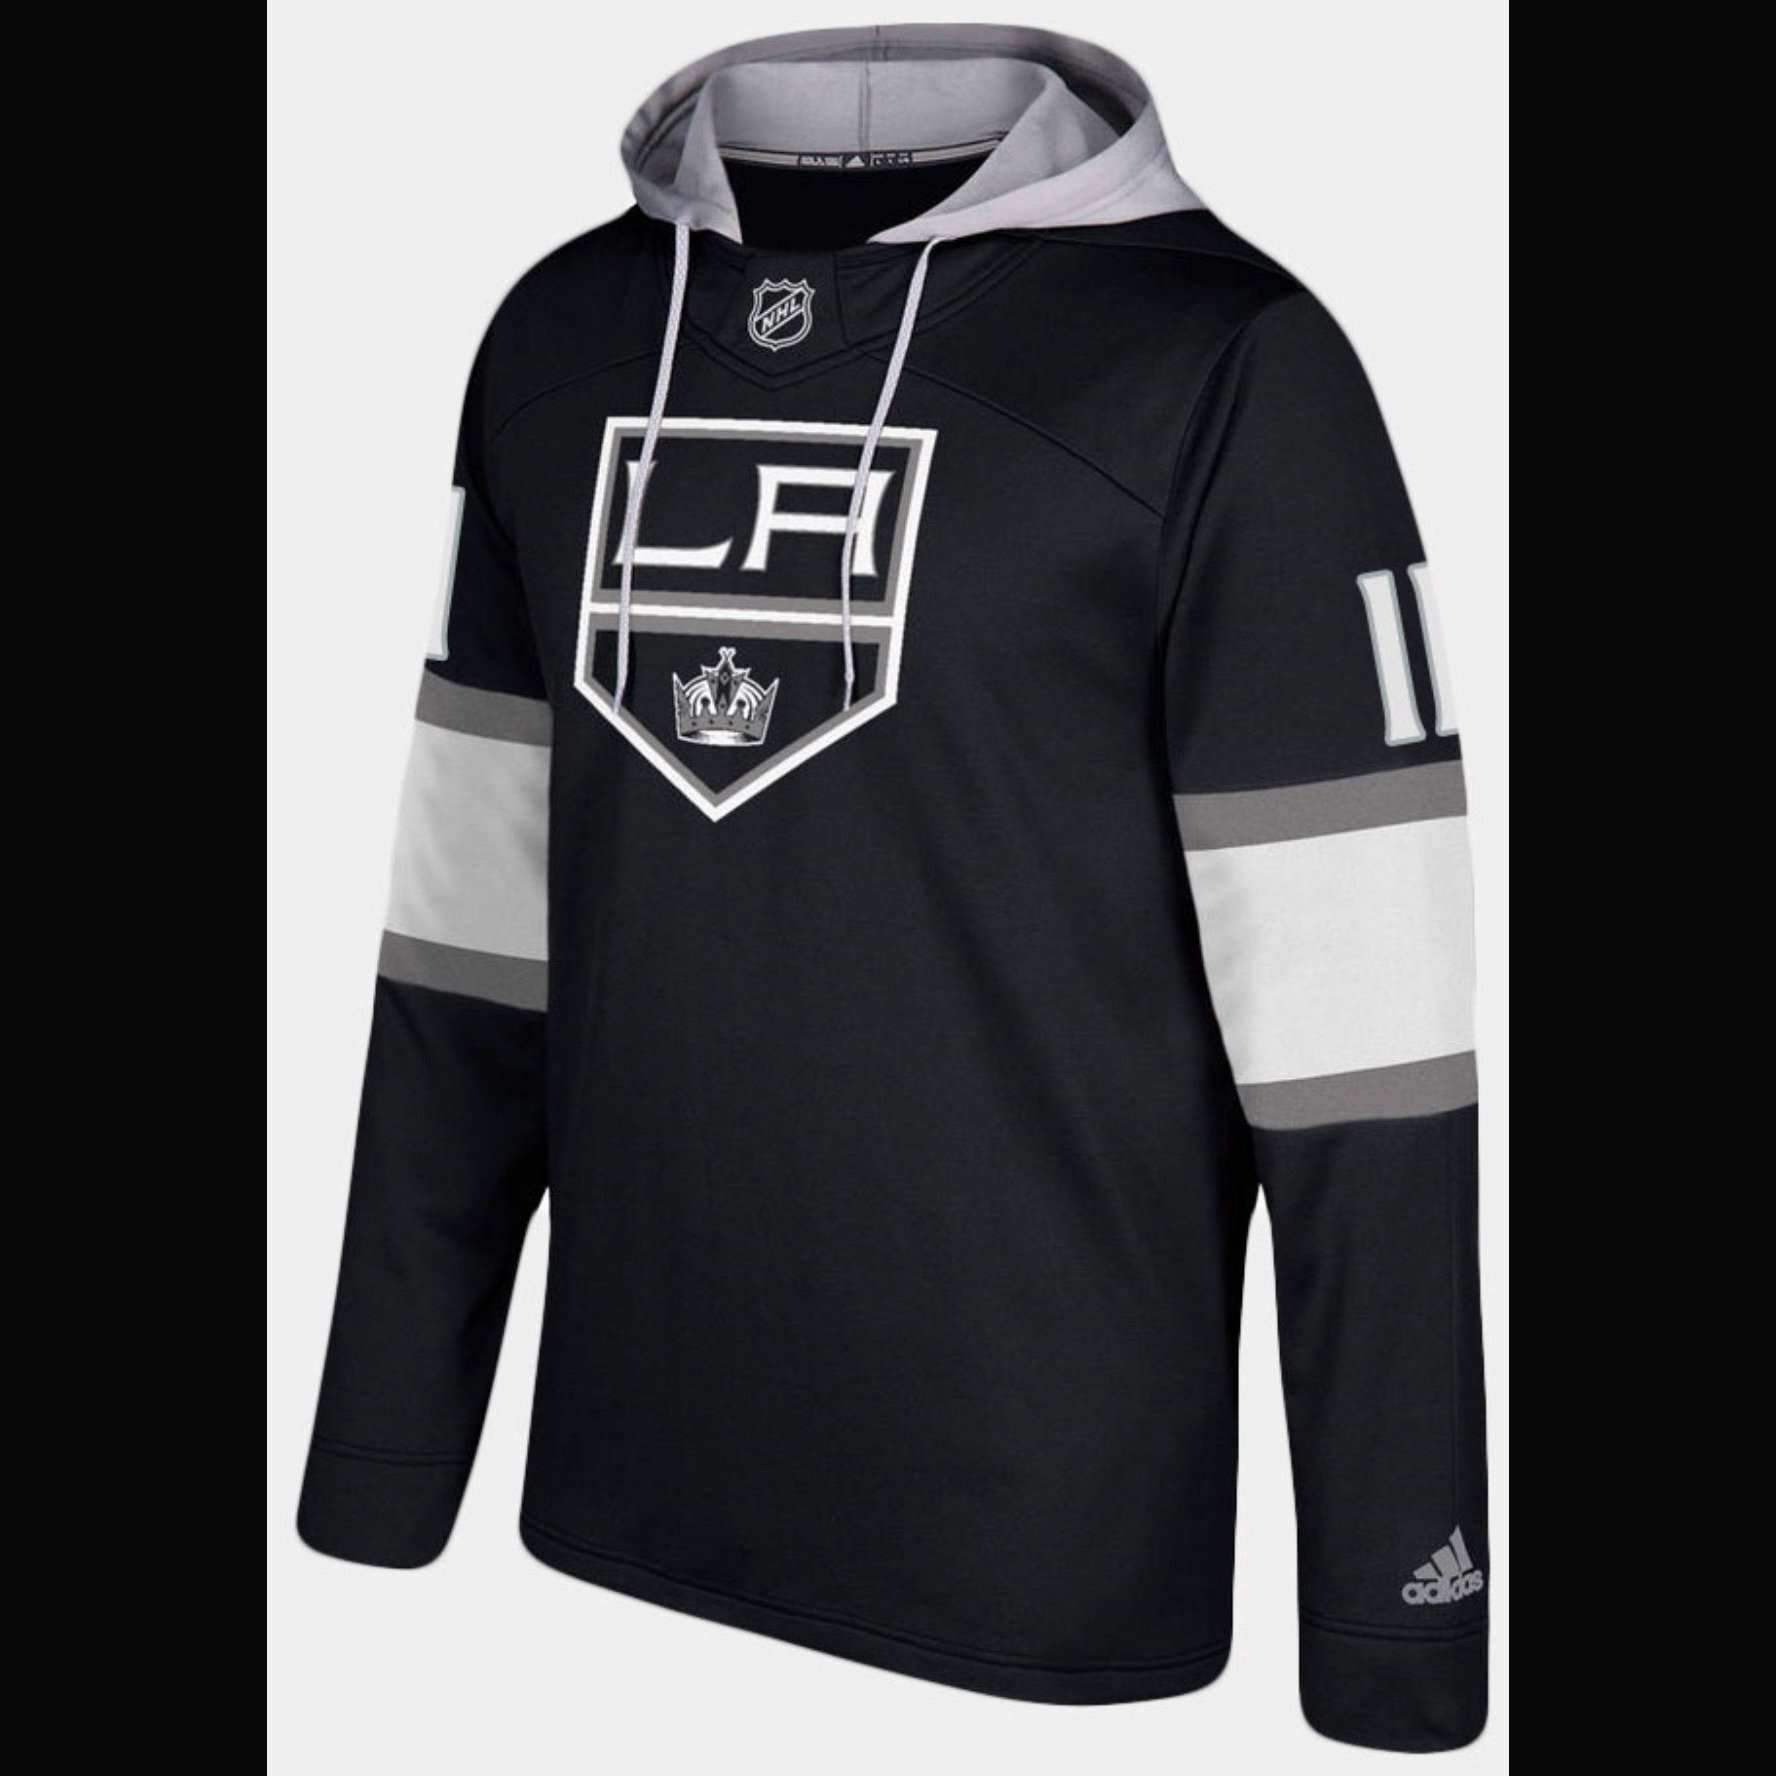 super popular bed2f 19077 LA Kings Adidas NHL Hockey Jersey Style Hoodie | Products ...